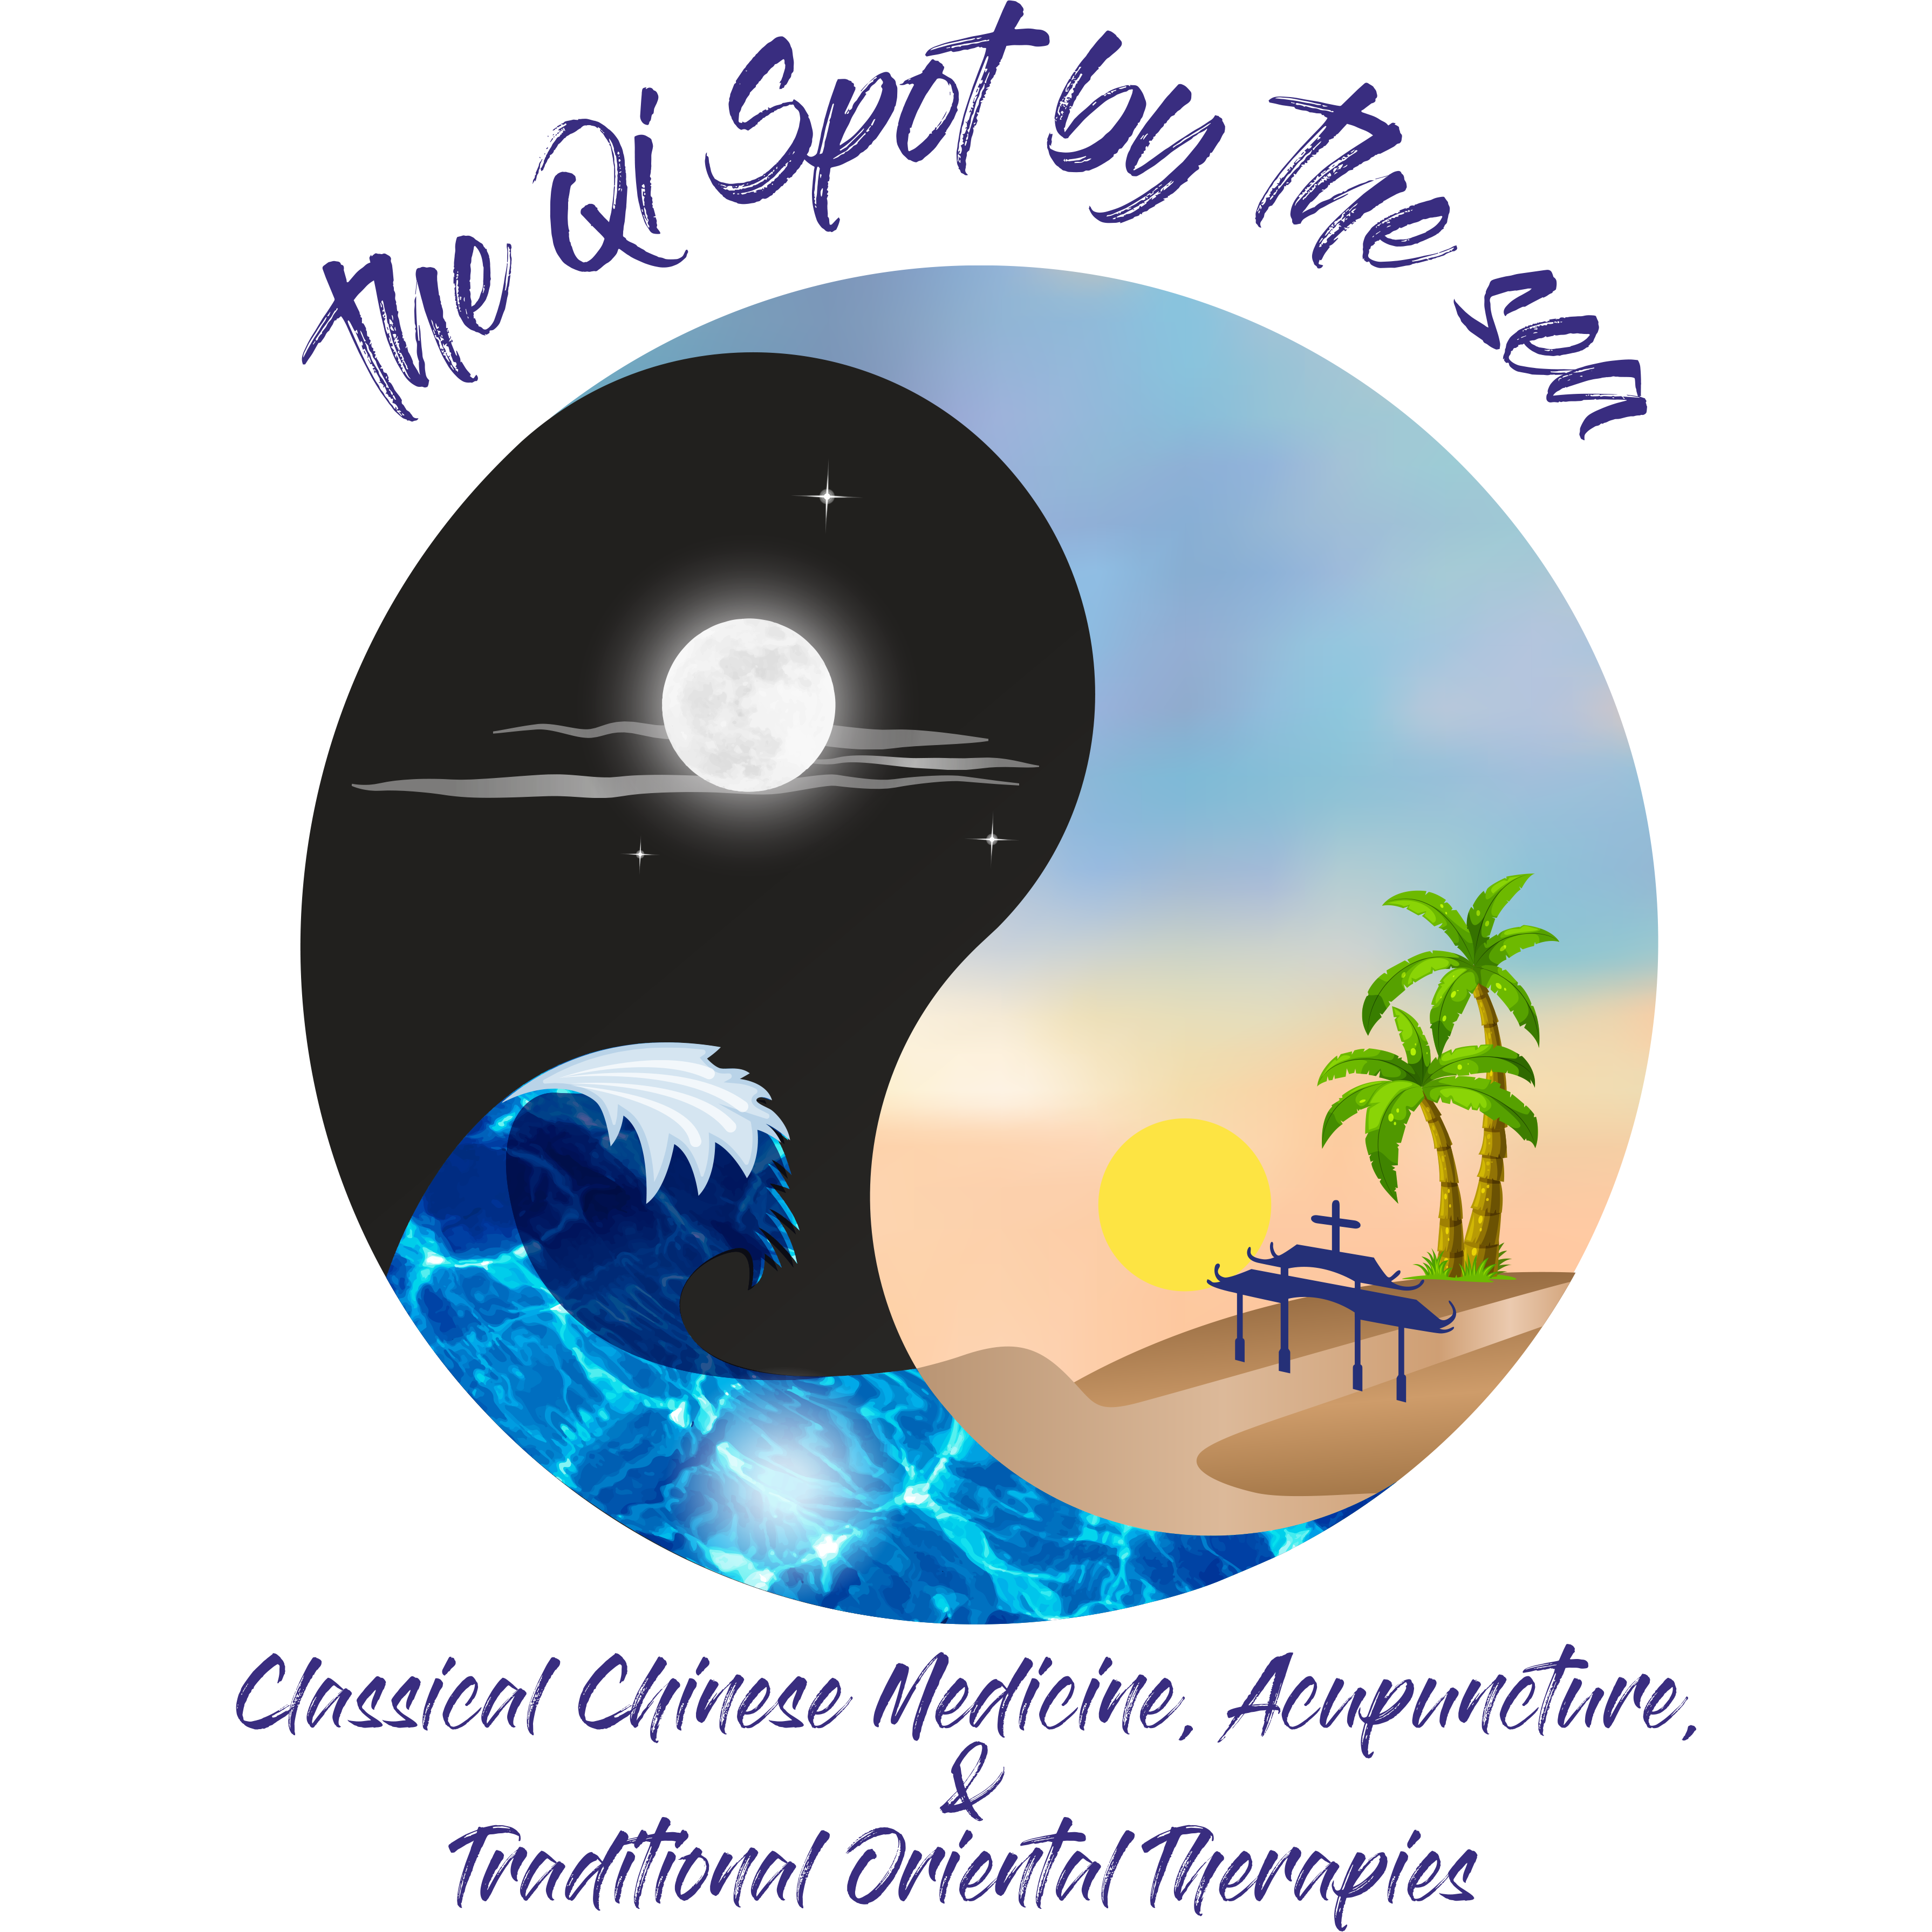 the Qi Spot by the sea